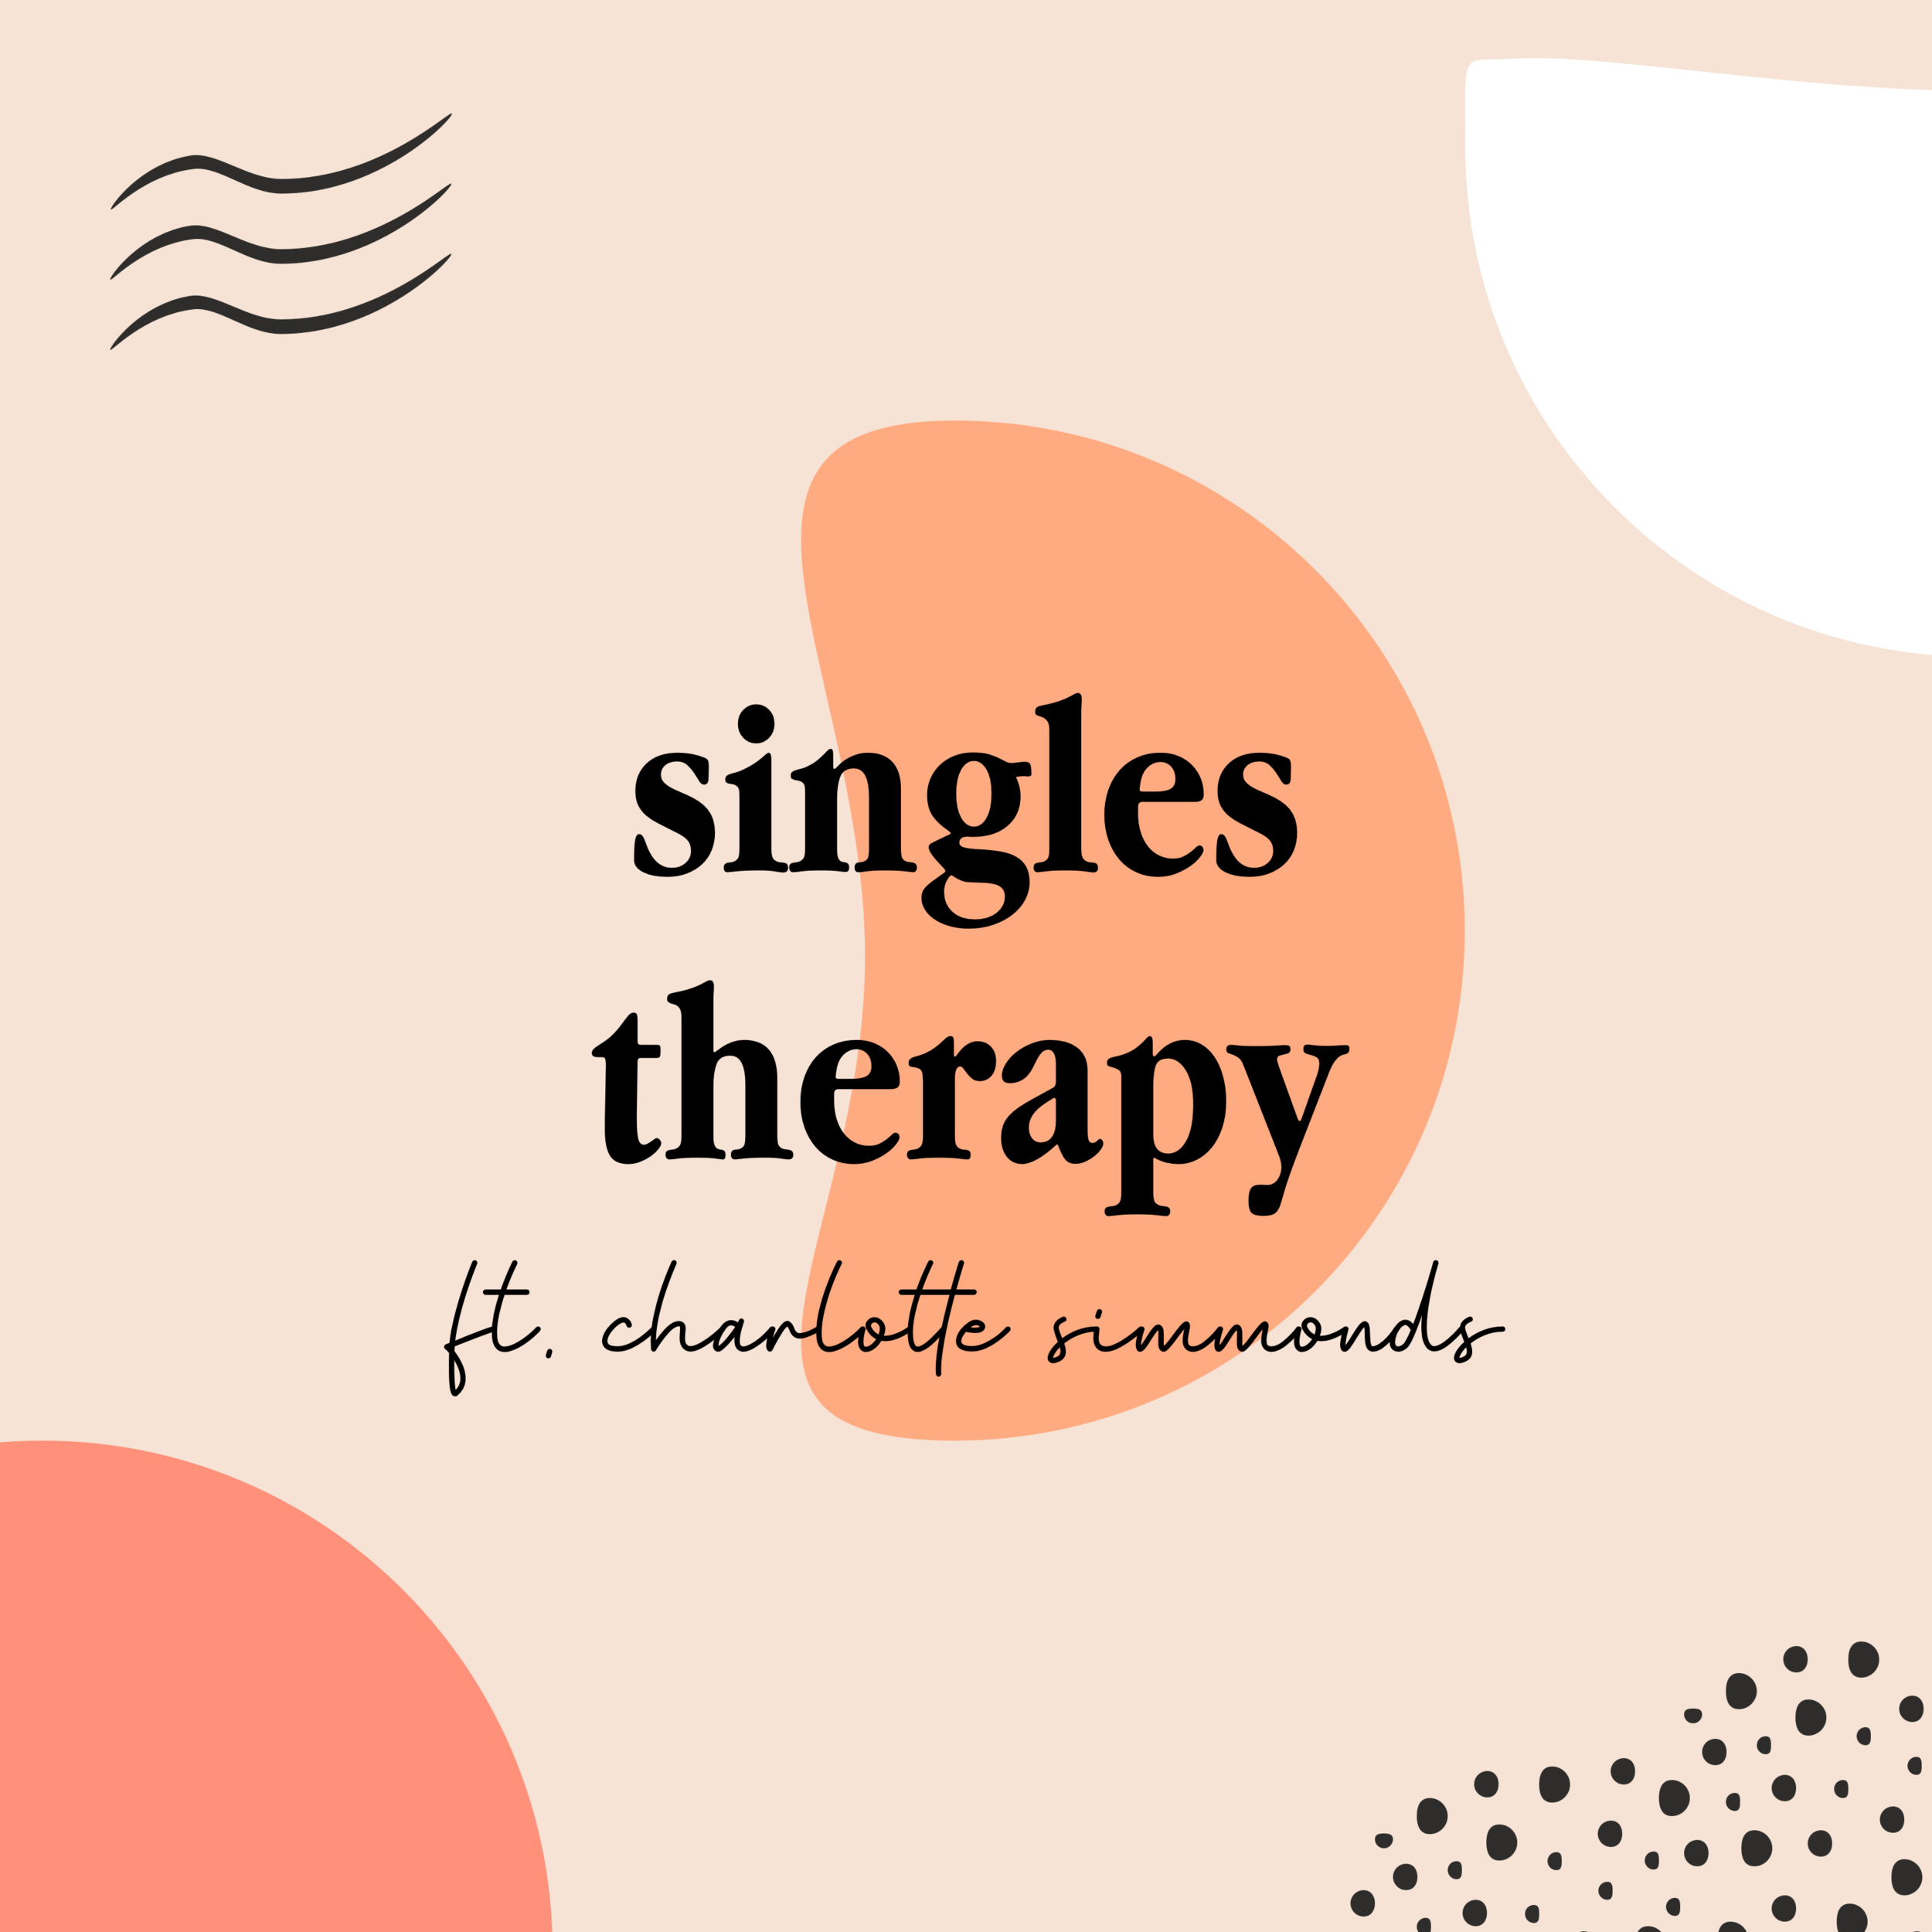 charlotte simmonds singles therapy.png